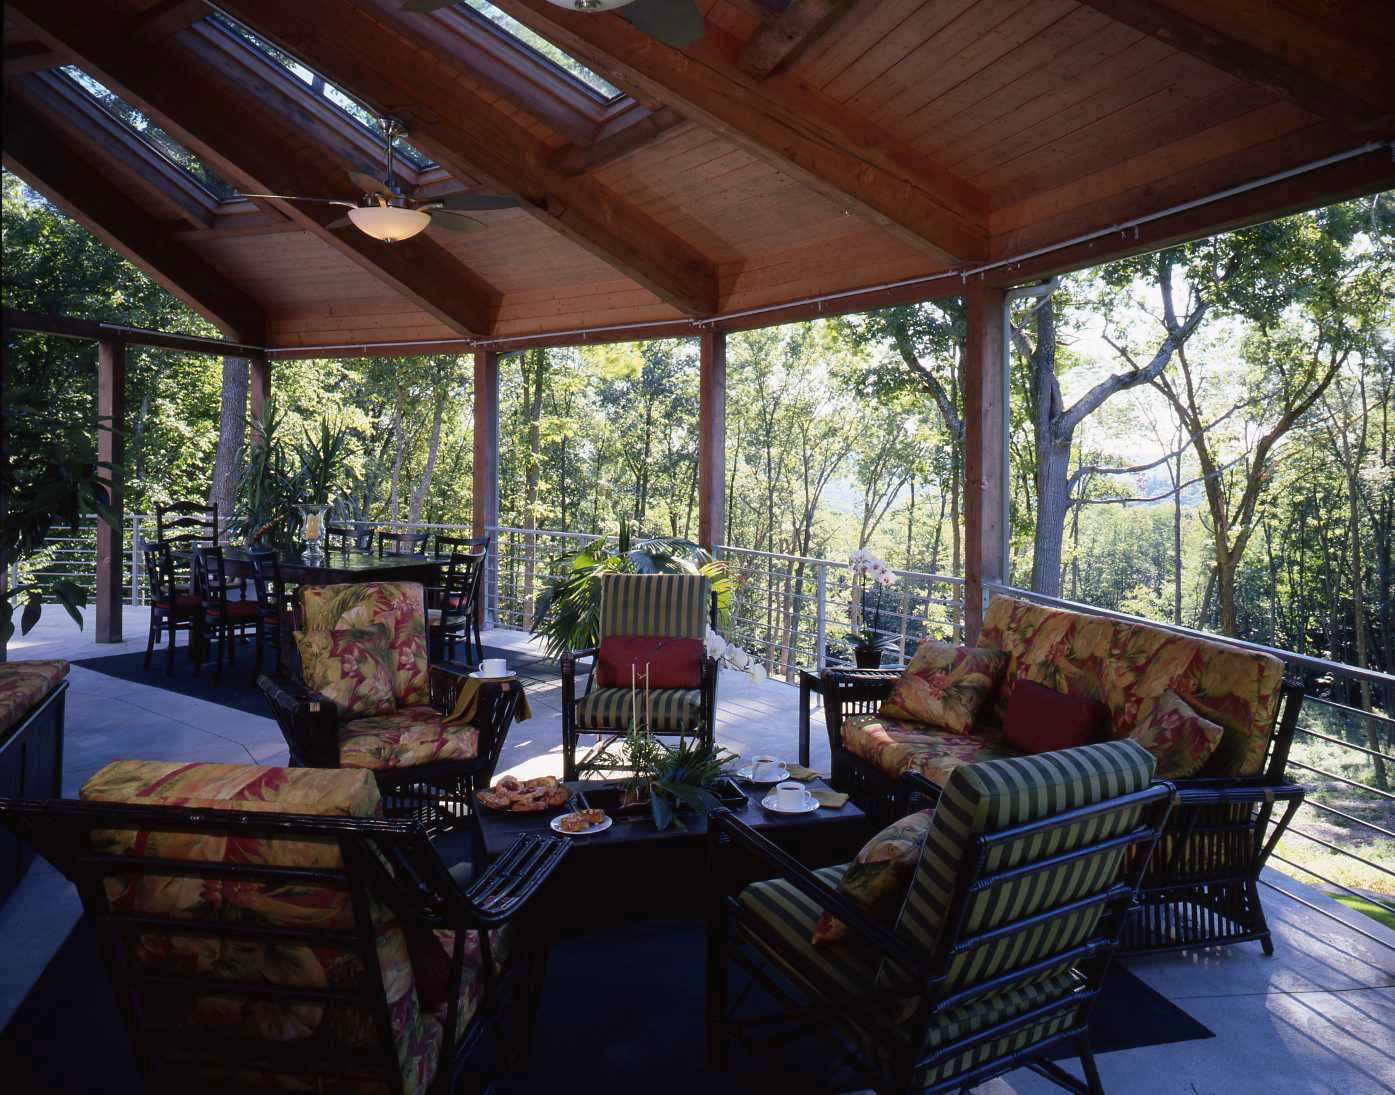 Best ideas about Outdoor Living Room . Save or Pin Your Guide to Attractively Cozy Outdoor Living Room Now.